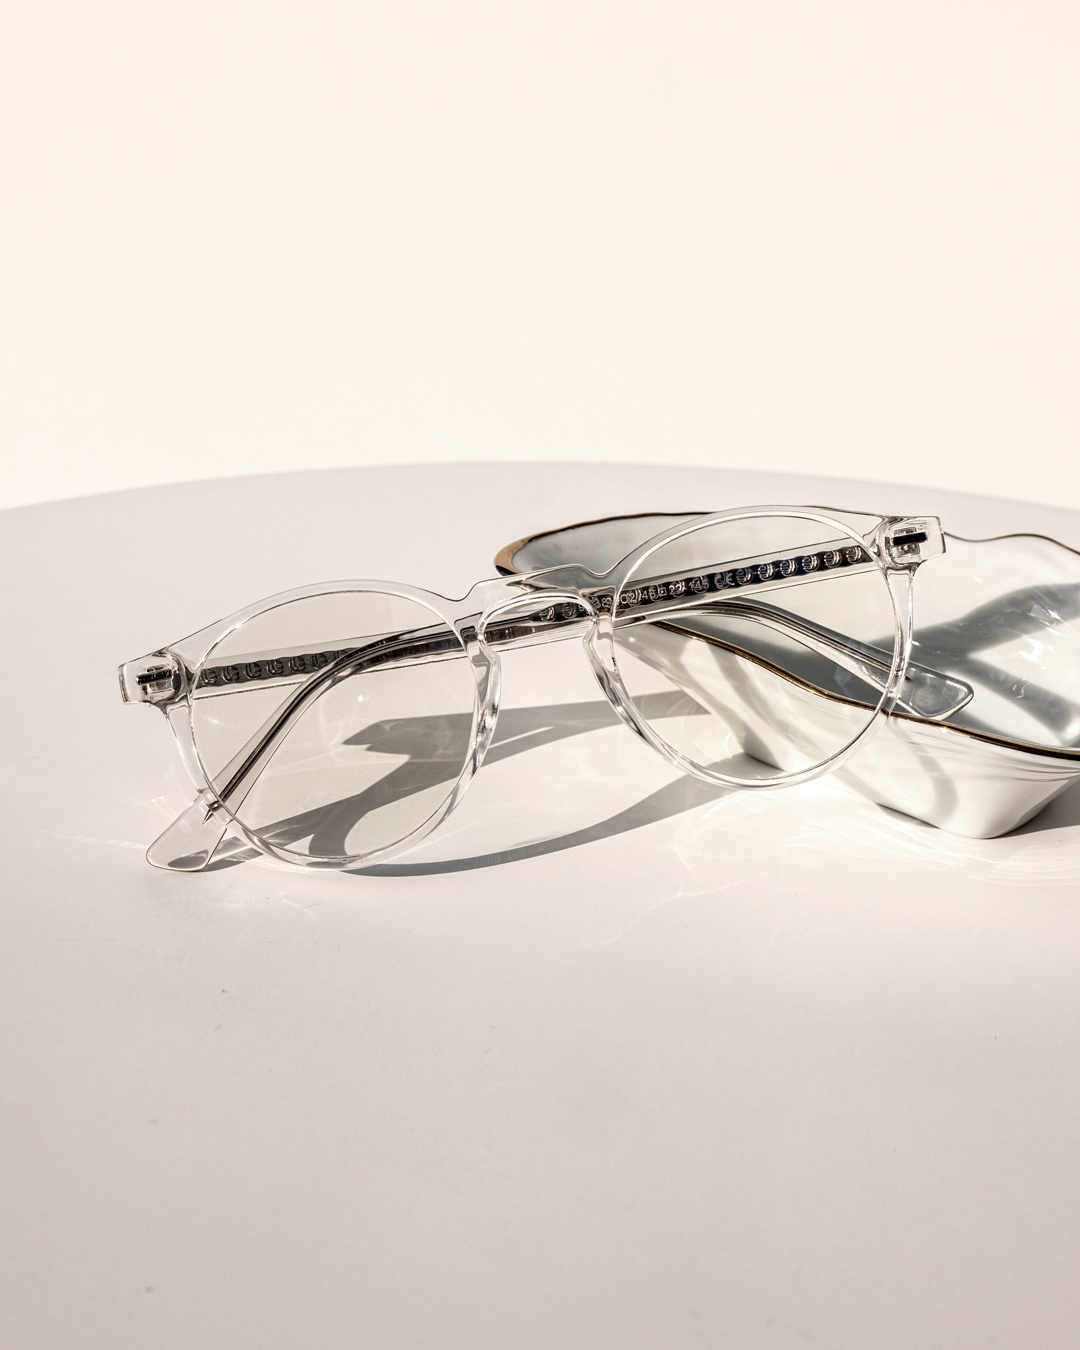 Panto framed glasses with a clear design rest against a white jewellery holder.